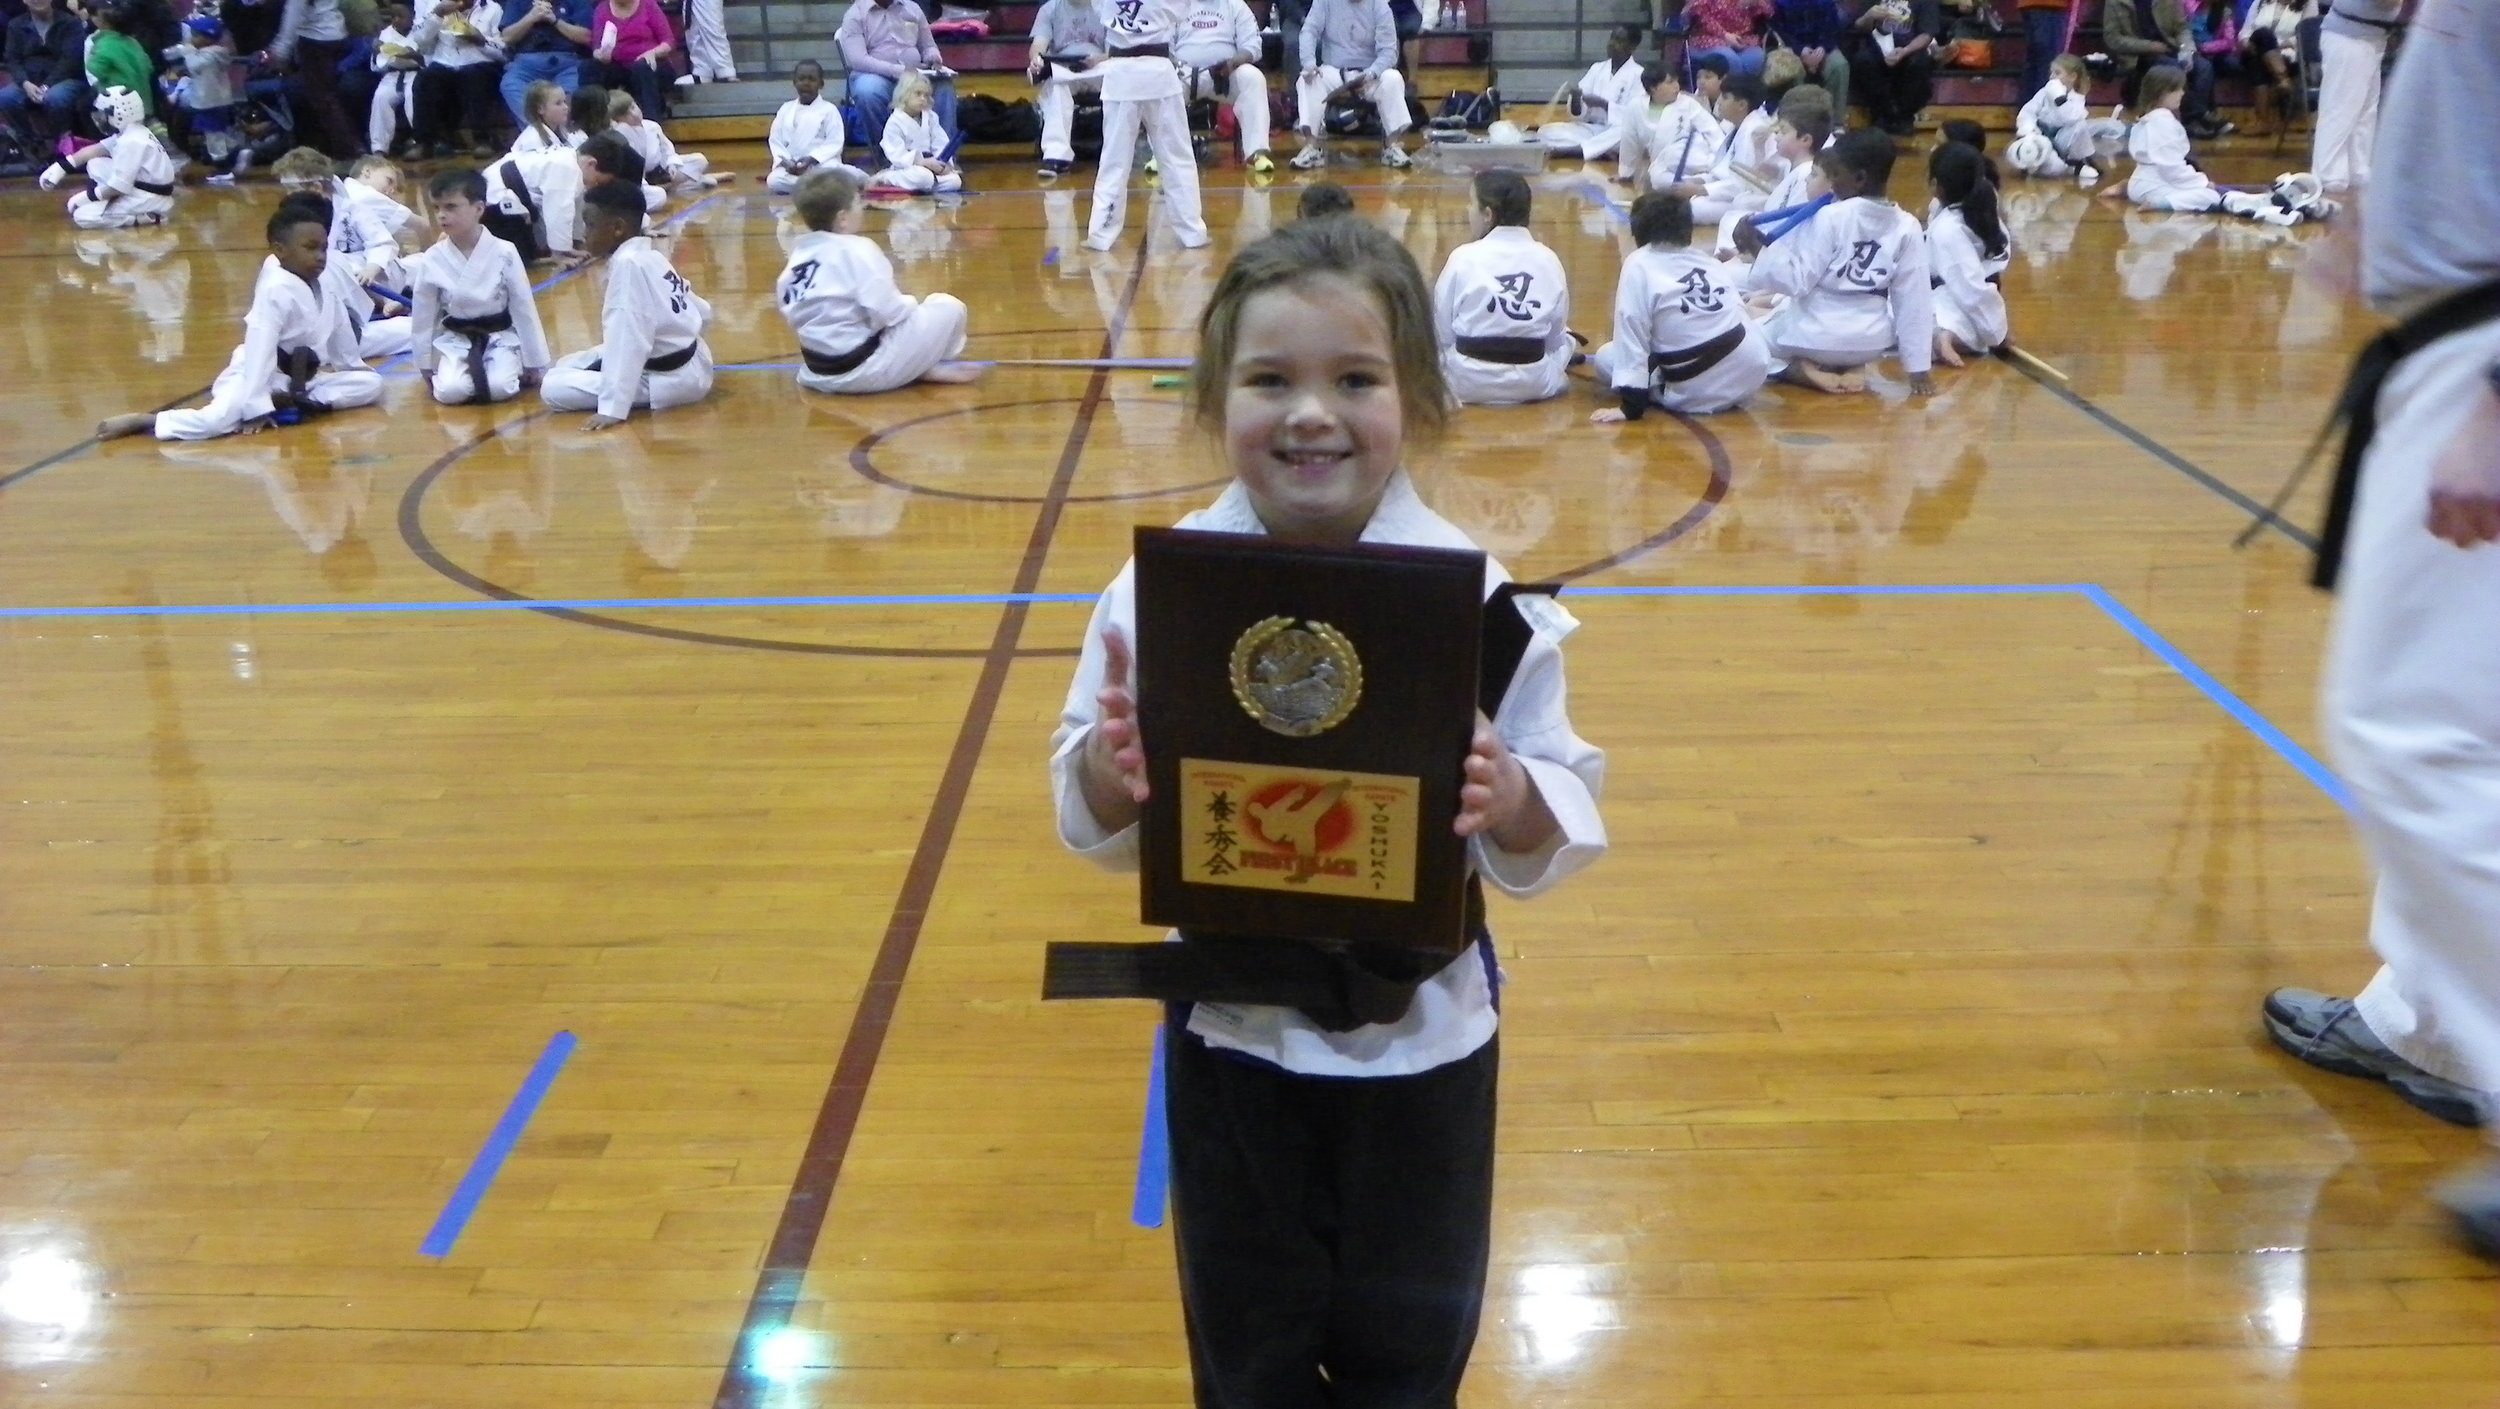 26th Annual IKF Karate Tournment